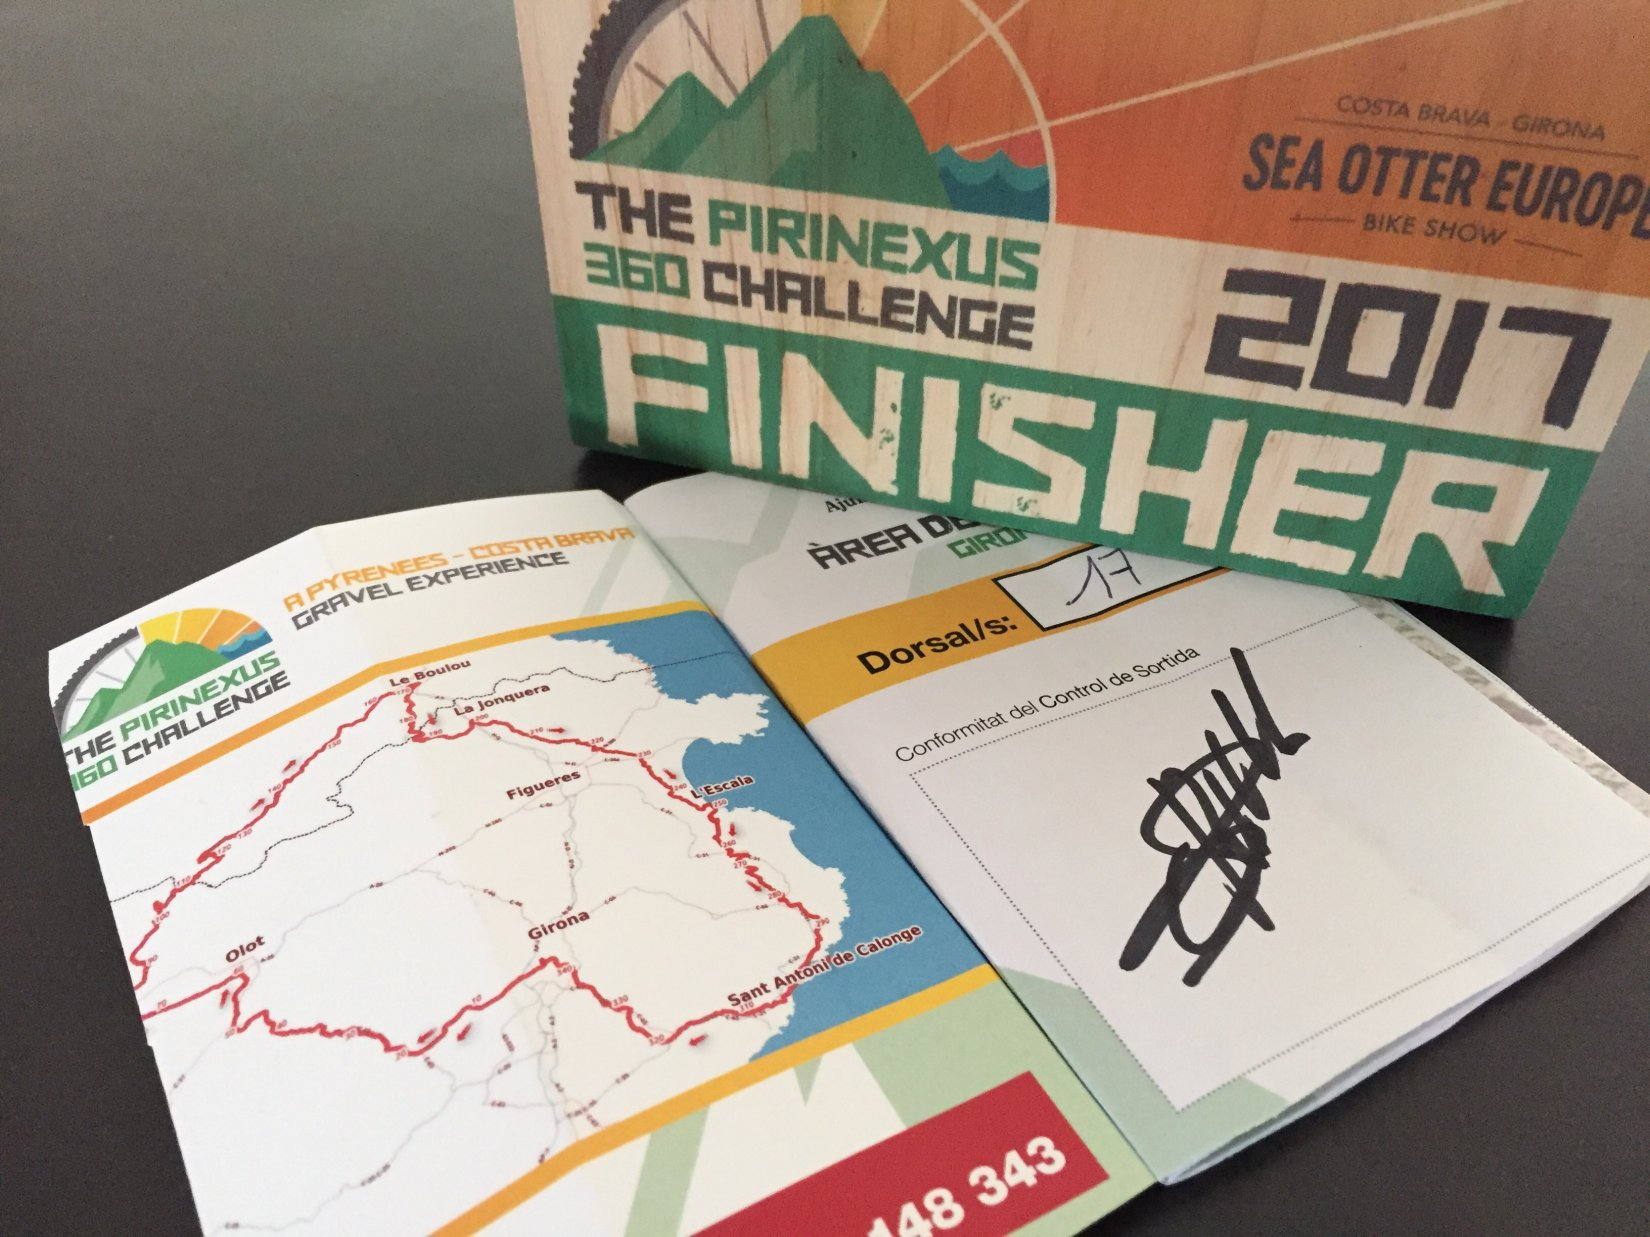 The pirinexus 360 challenge